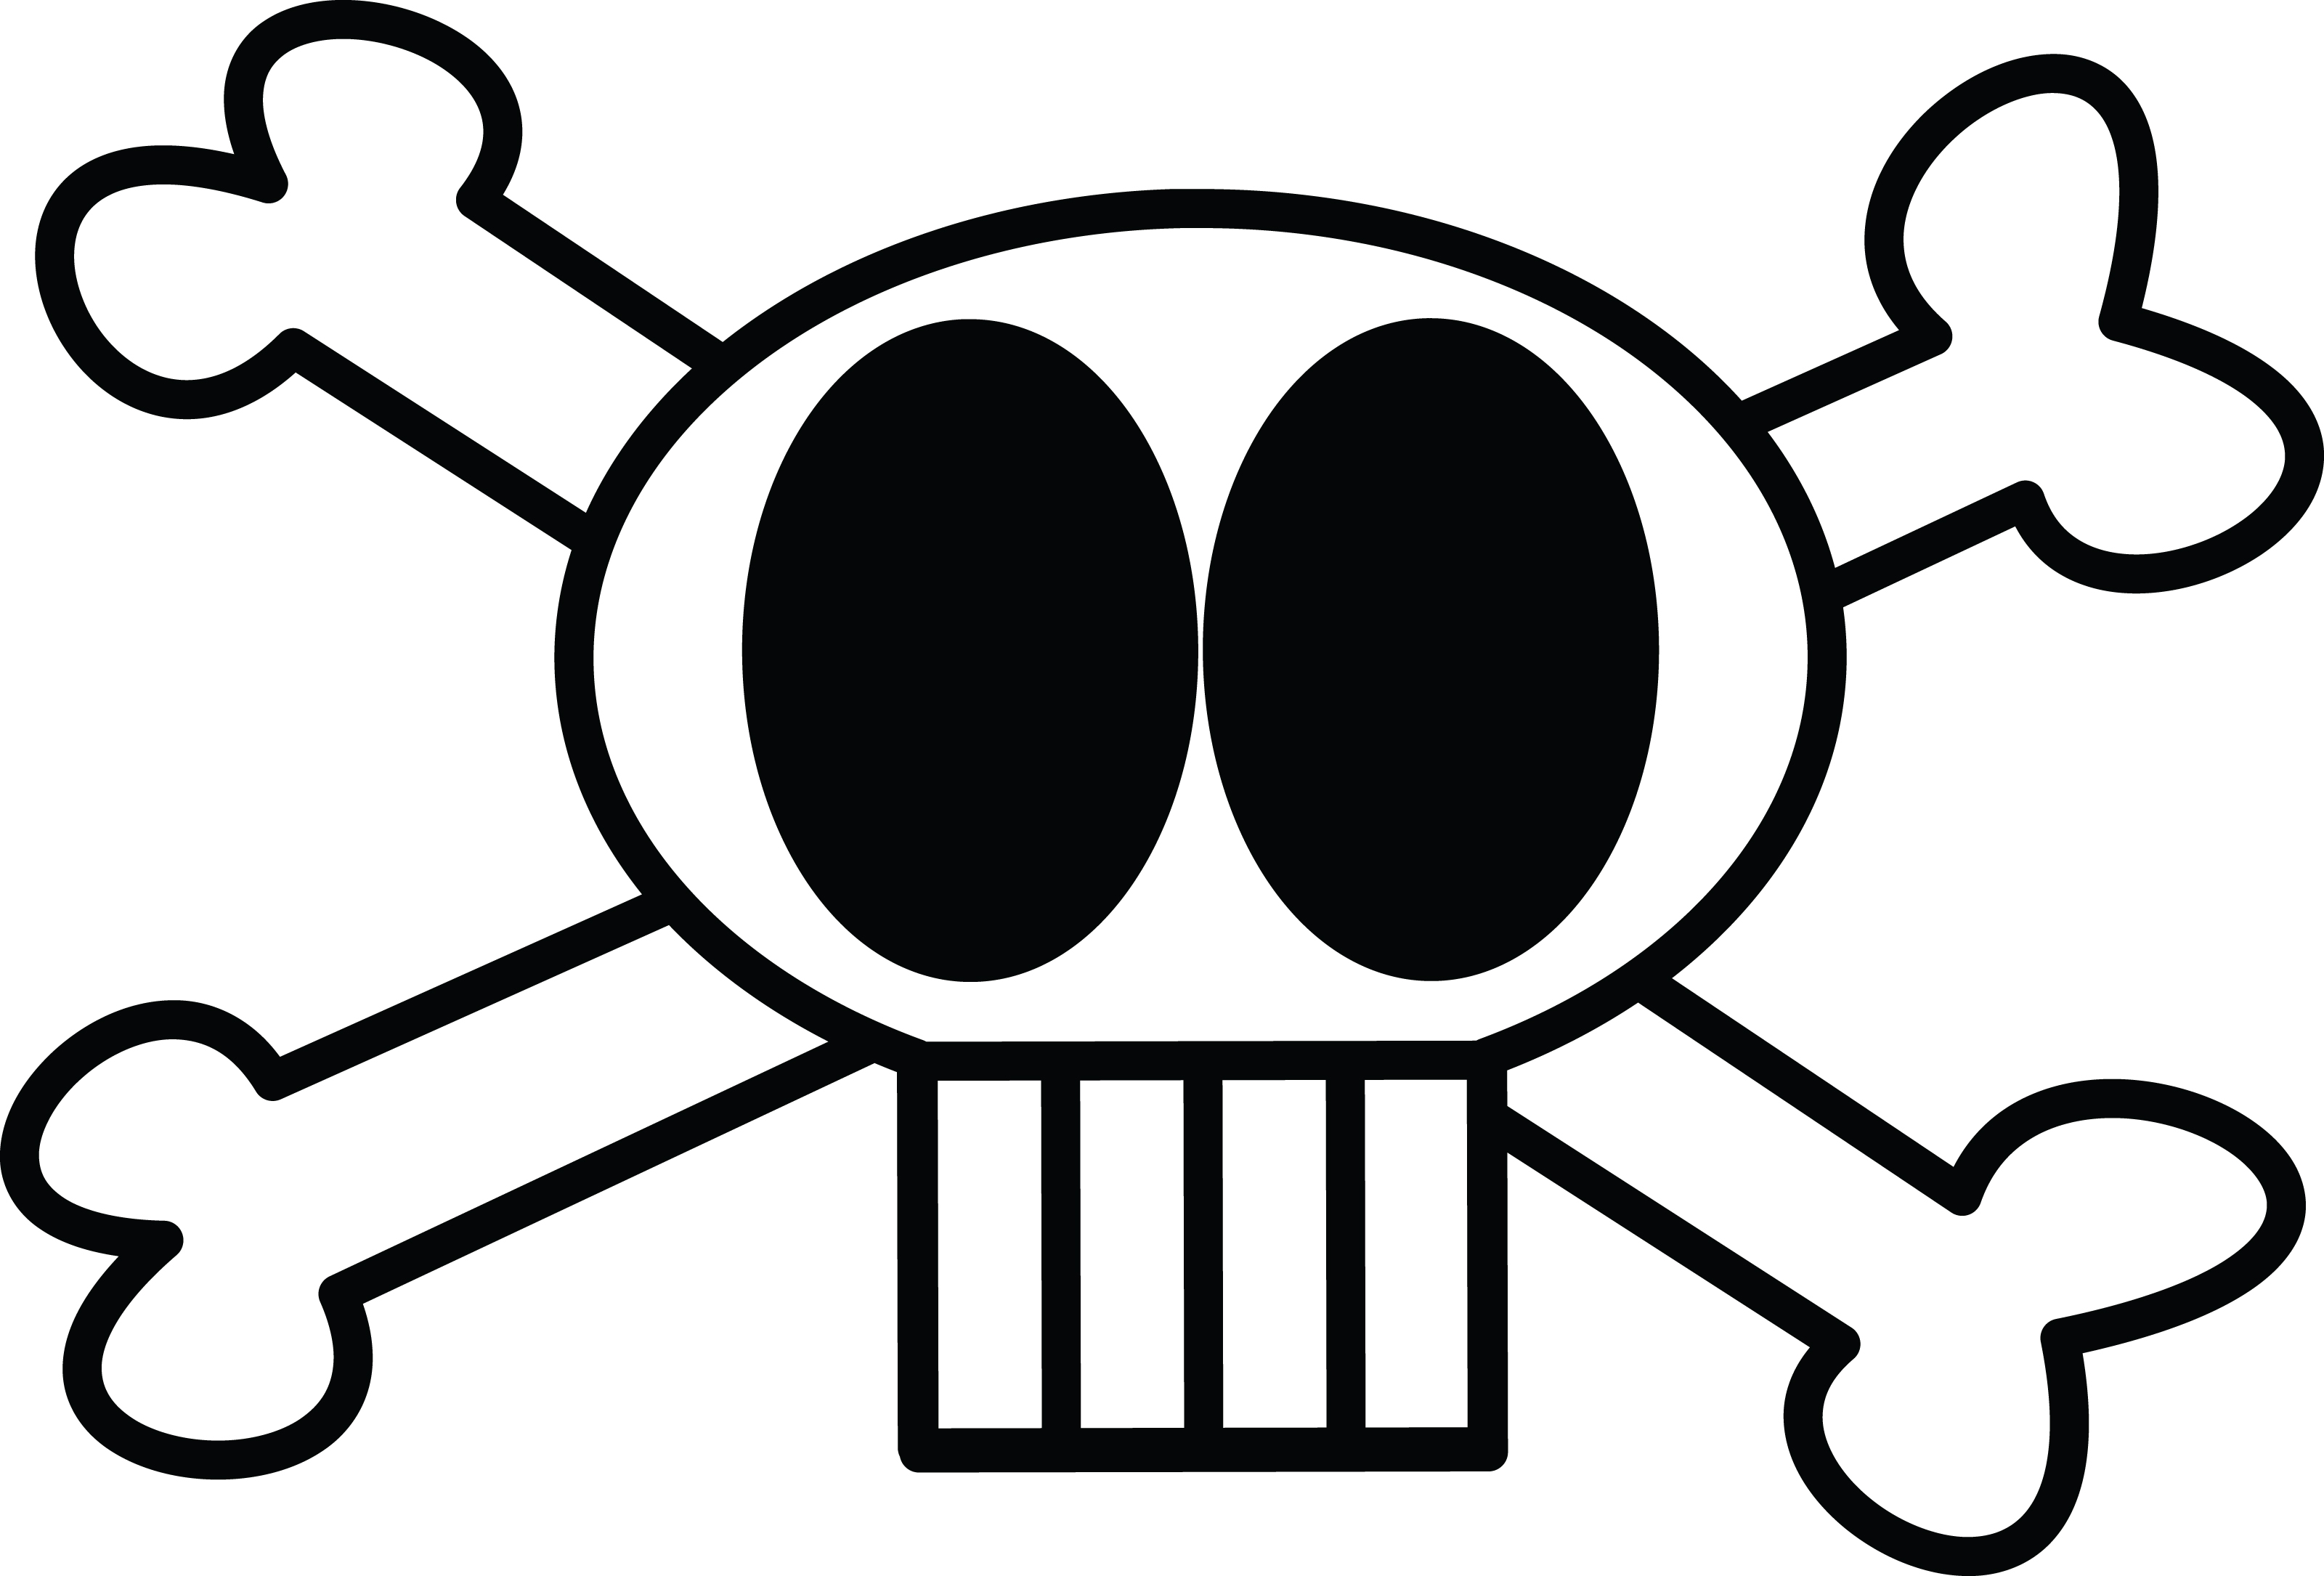 Free Clipart Illustration Of Skull And C-Free Clipart Illustration Of Skull And Crossbones-2